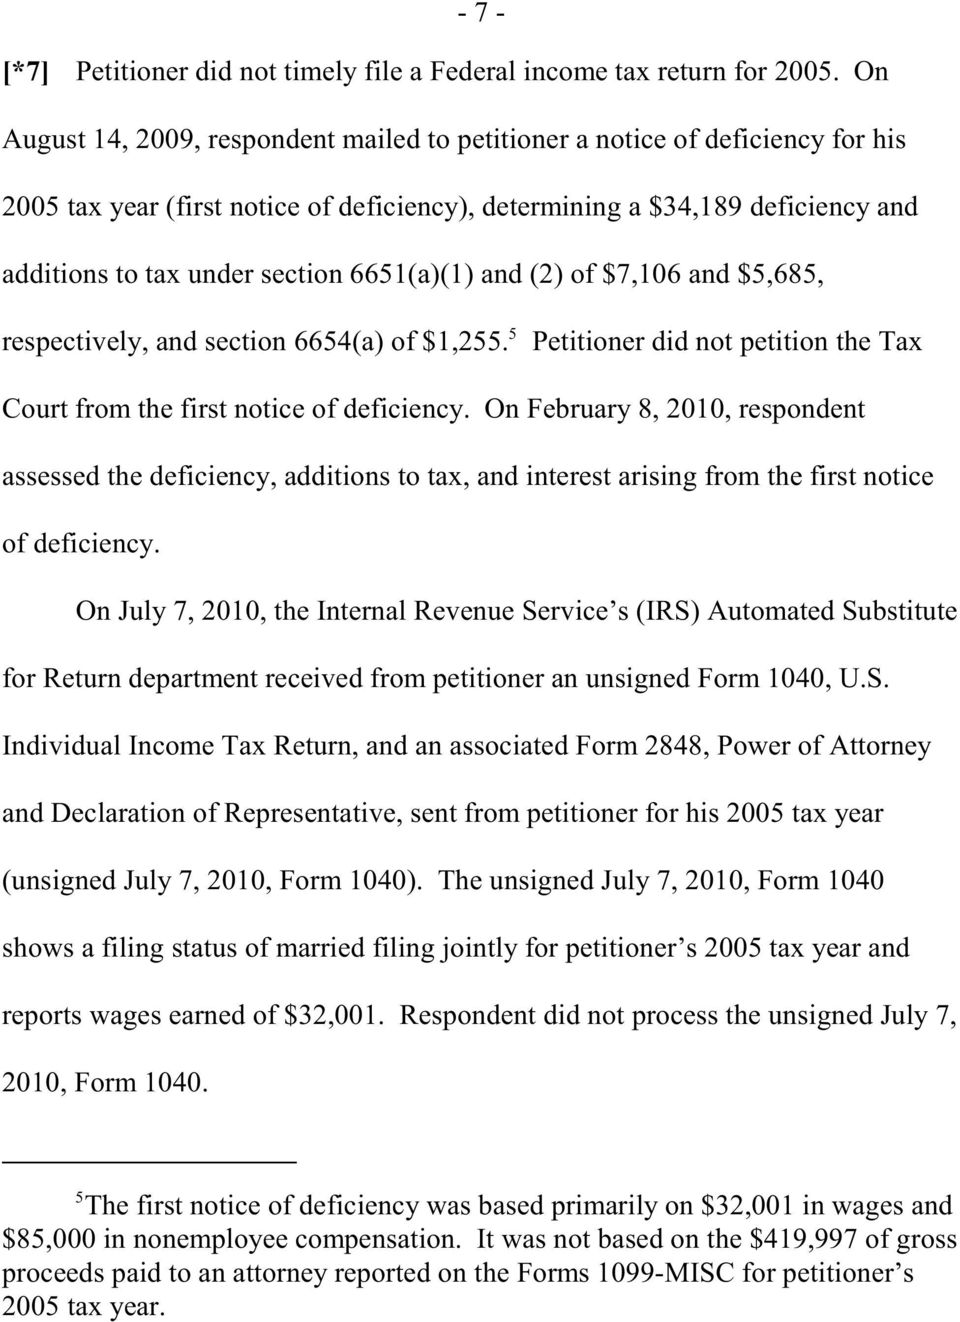 6651(a)(1) and (2) of $7,106 and $5,685, 5 respectively, and section 6654(a) of $1,255. Petitioner did not petition the Tax Court from the first notice of deficiency.